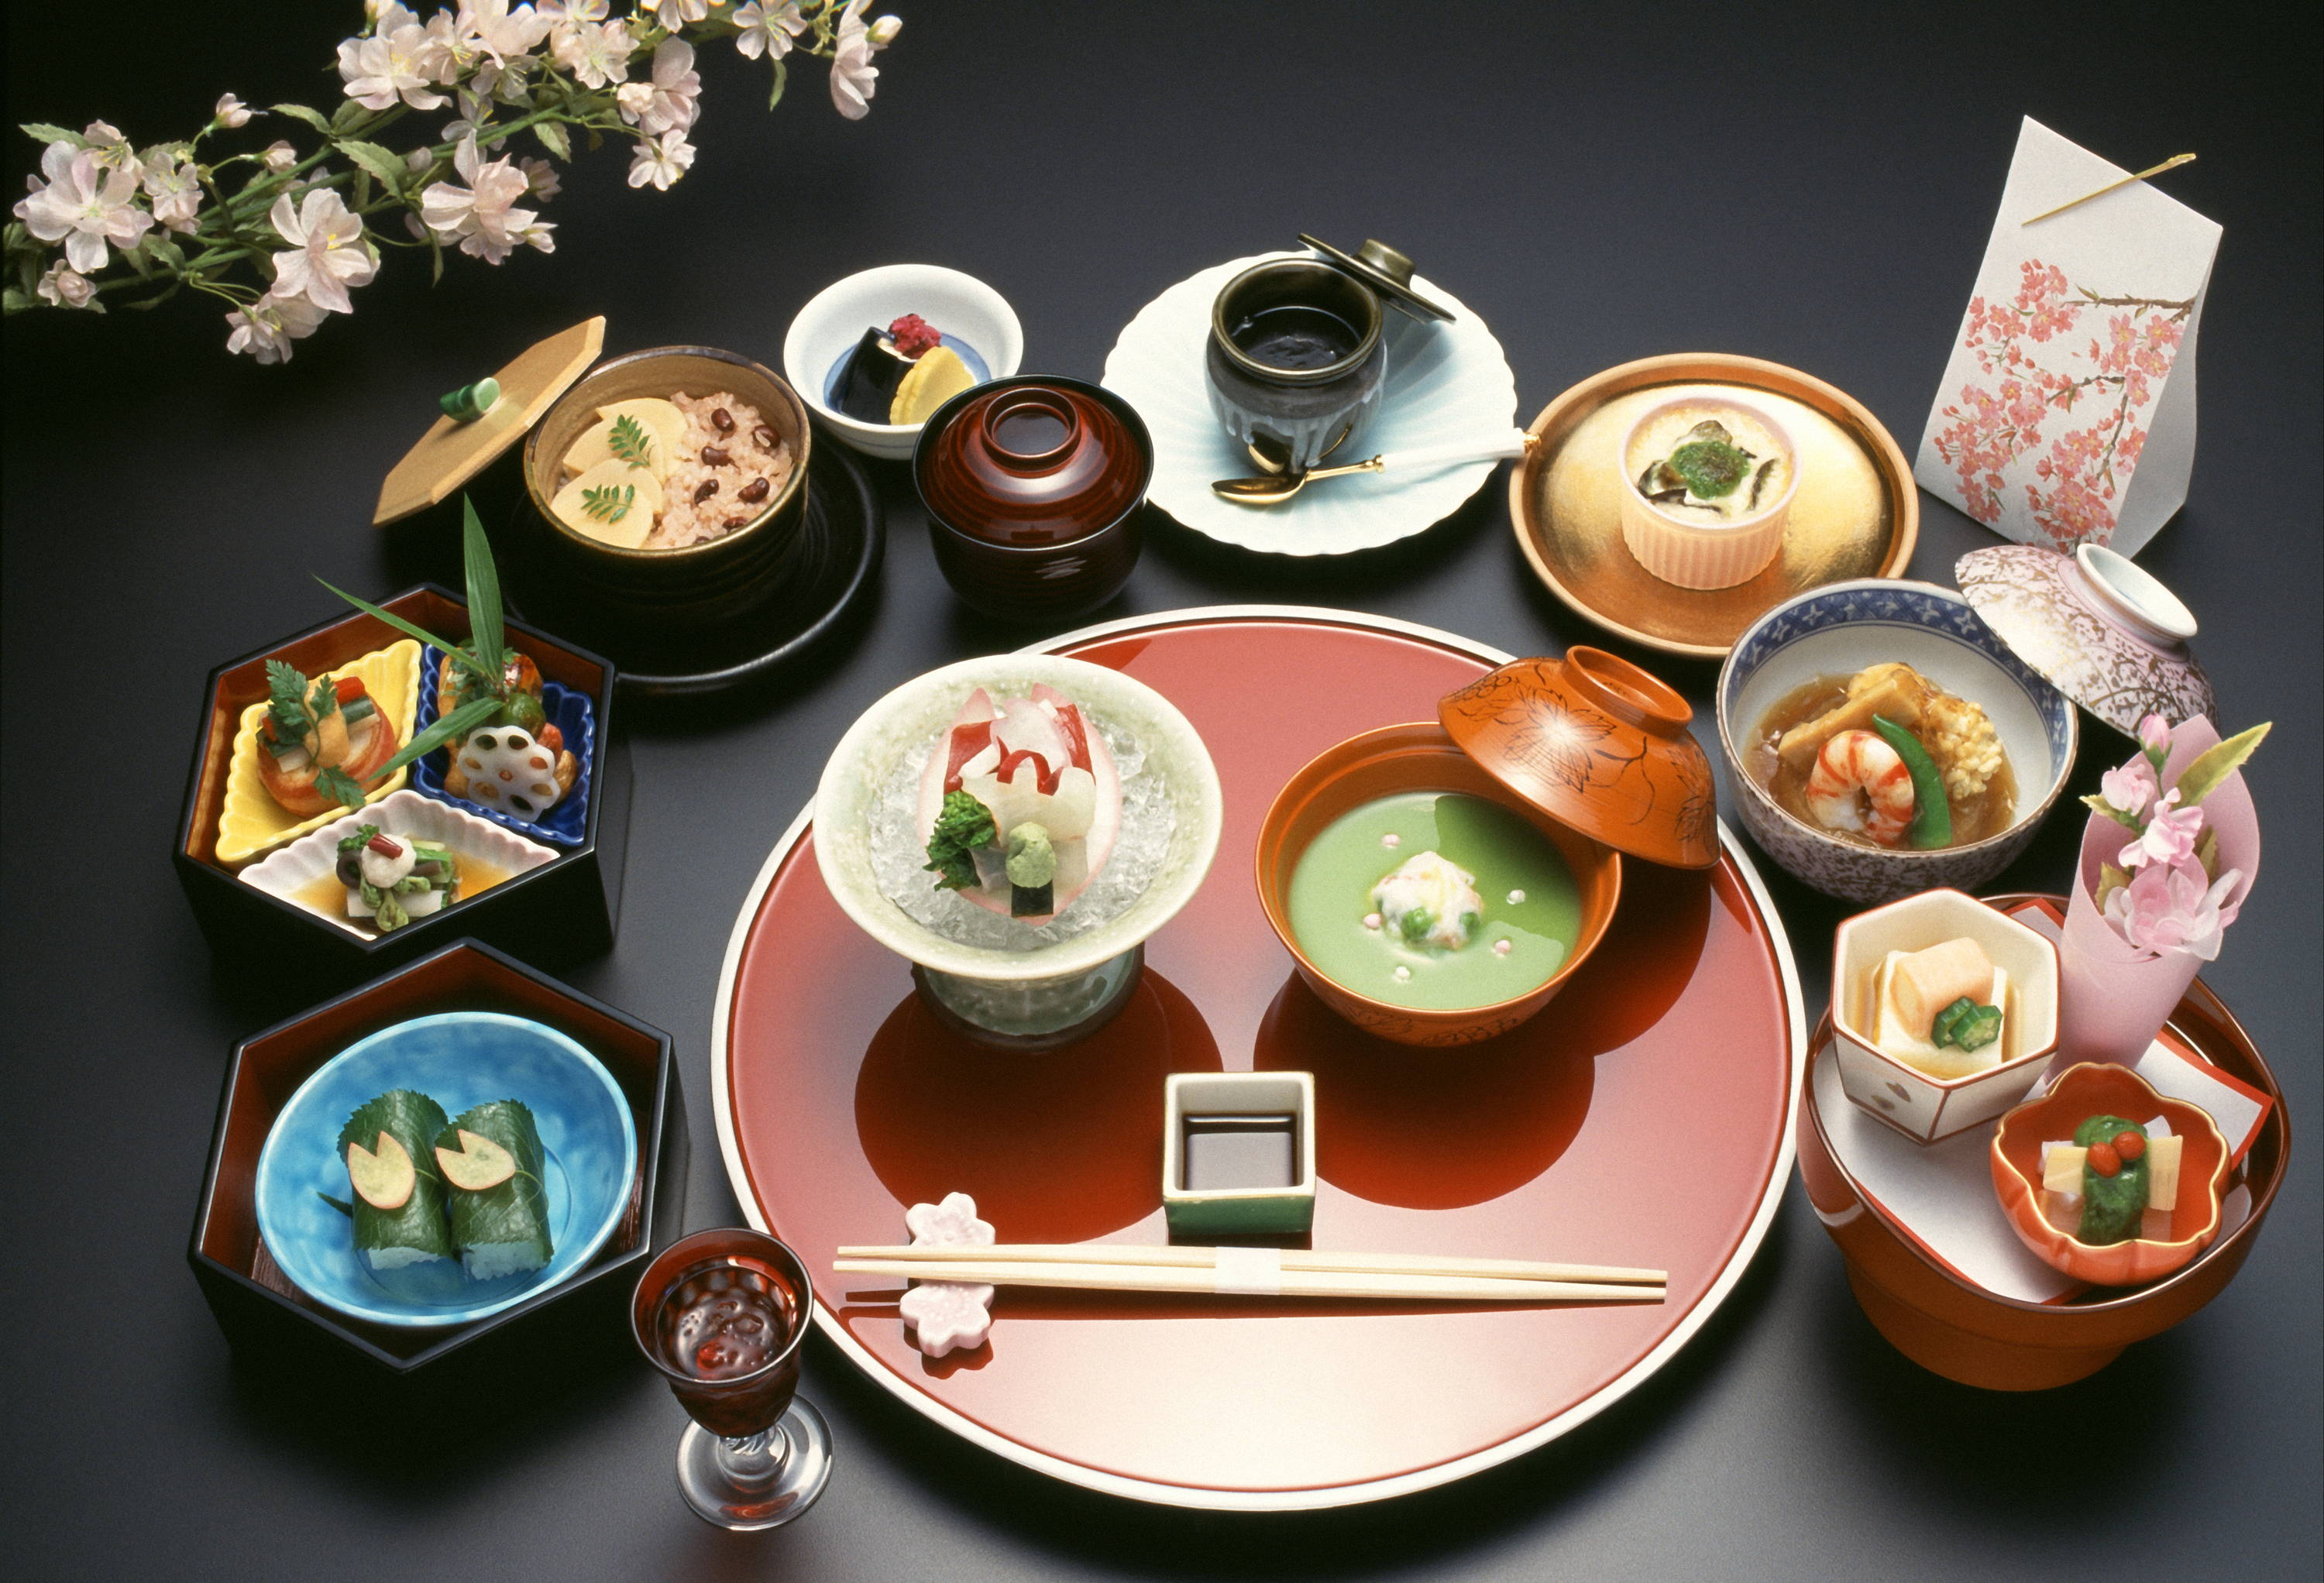 A picture of kaiseki, a traditional meal in Japan